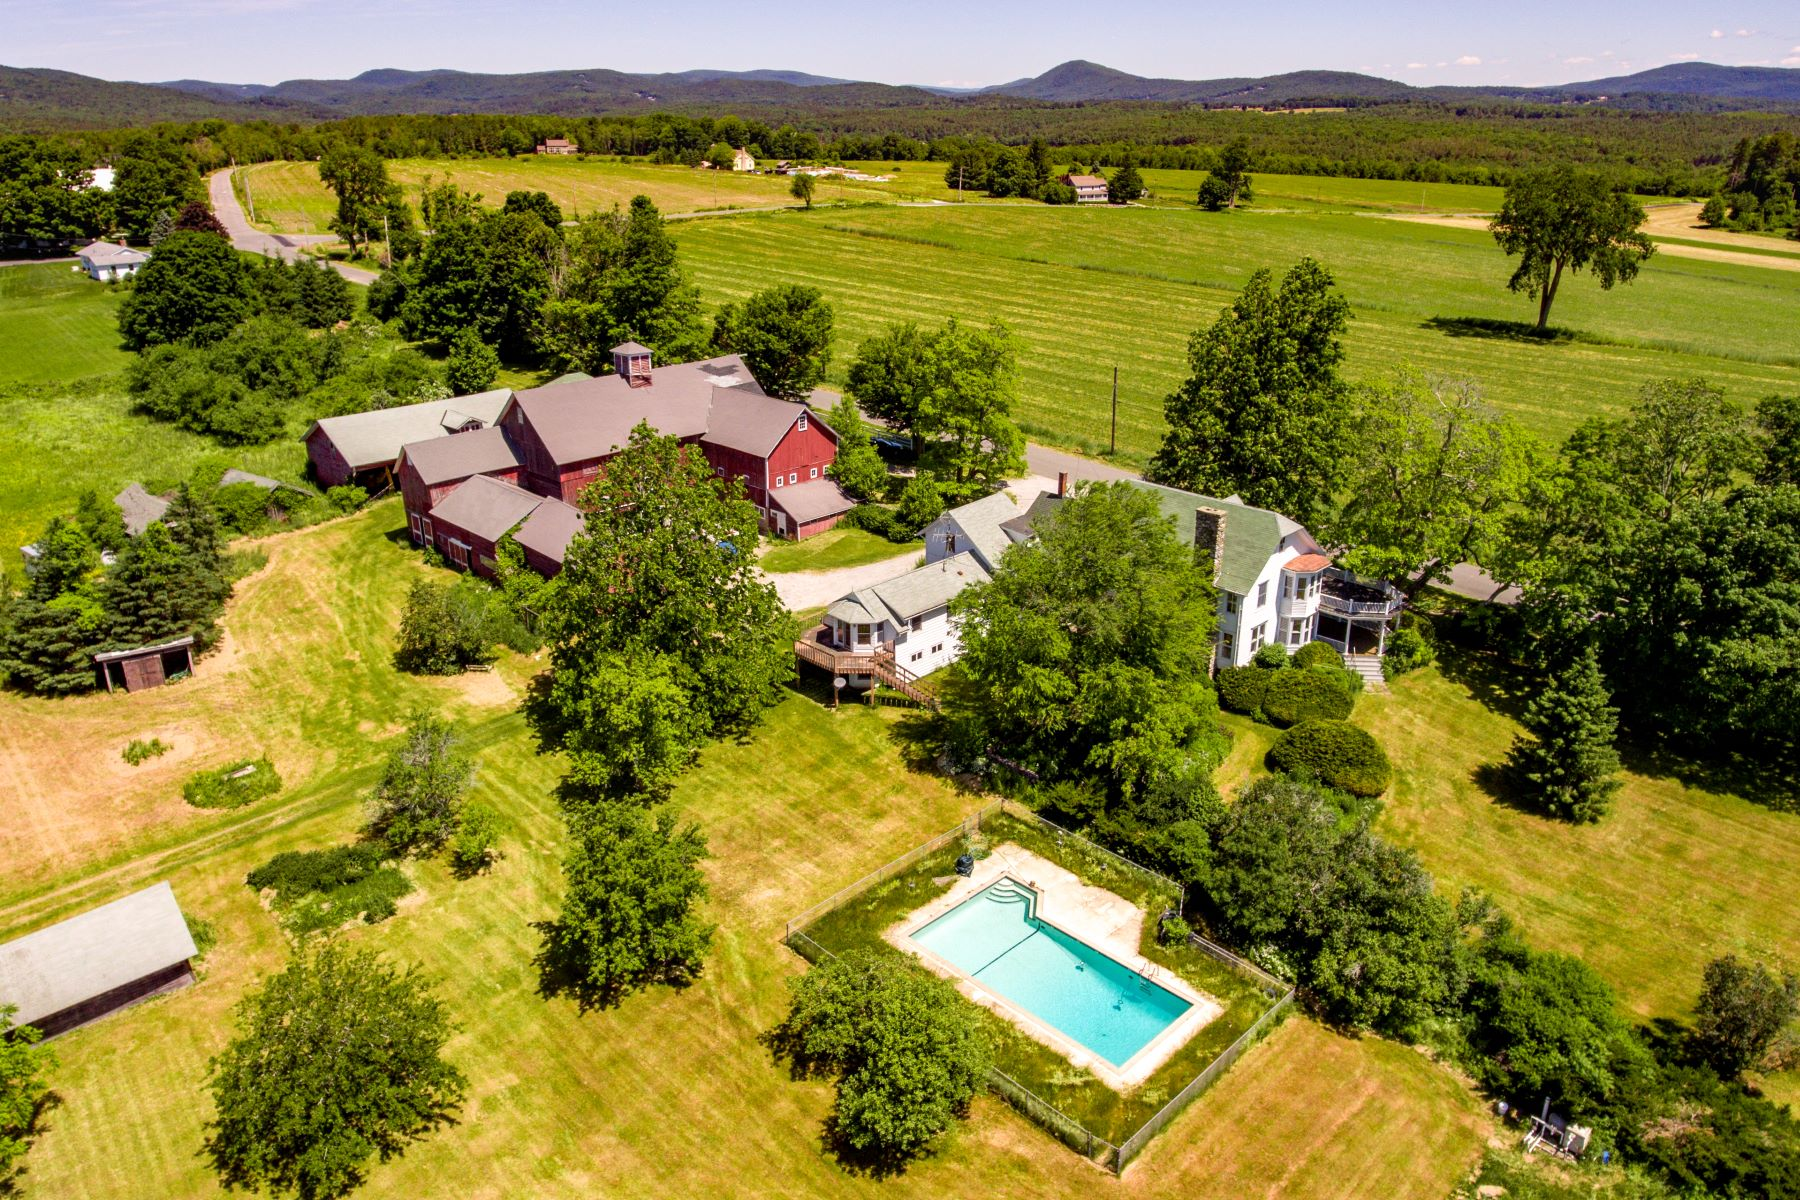 Casa Unifamiliar por un Venta en Baldwin Hill Farm - an Iconic Berkshire Property 121 Baldwin Hill Rd Egremont, Massachusetts 01258 Estados Unidos